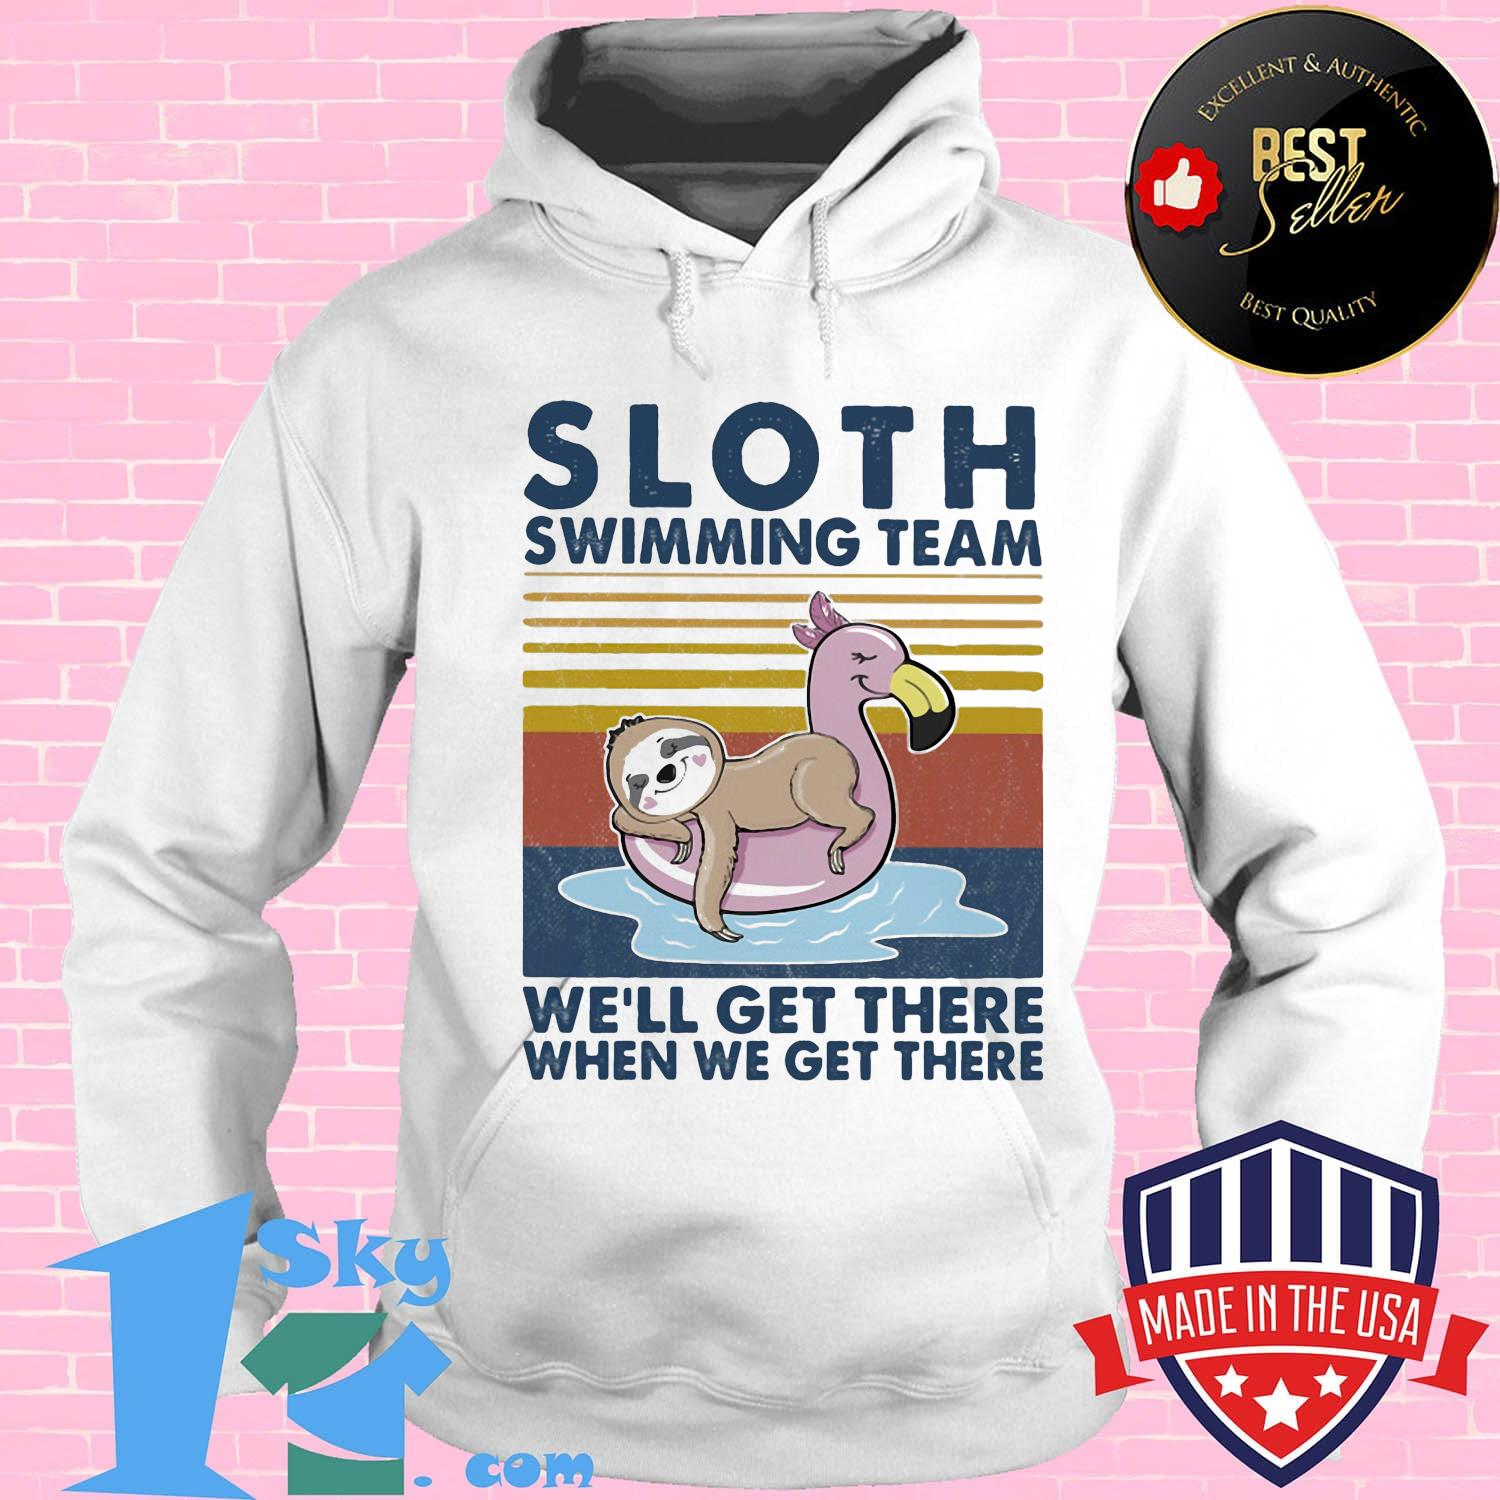 d7596f7f official sloth swimming team we will get there when we get there vintage retro shirt hoodie - Shop trending - We offer all trend shirts - 1SkyTee